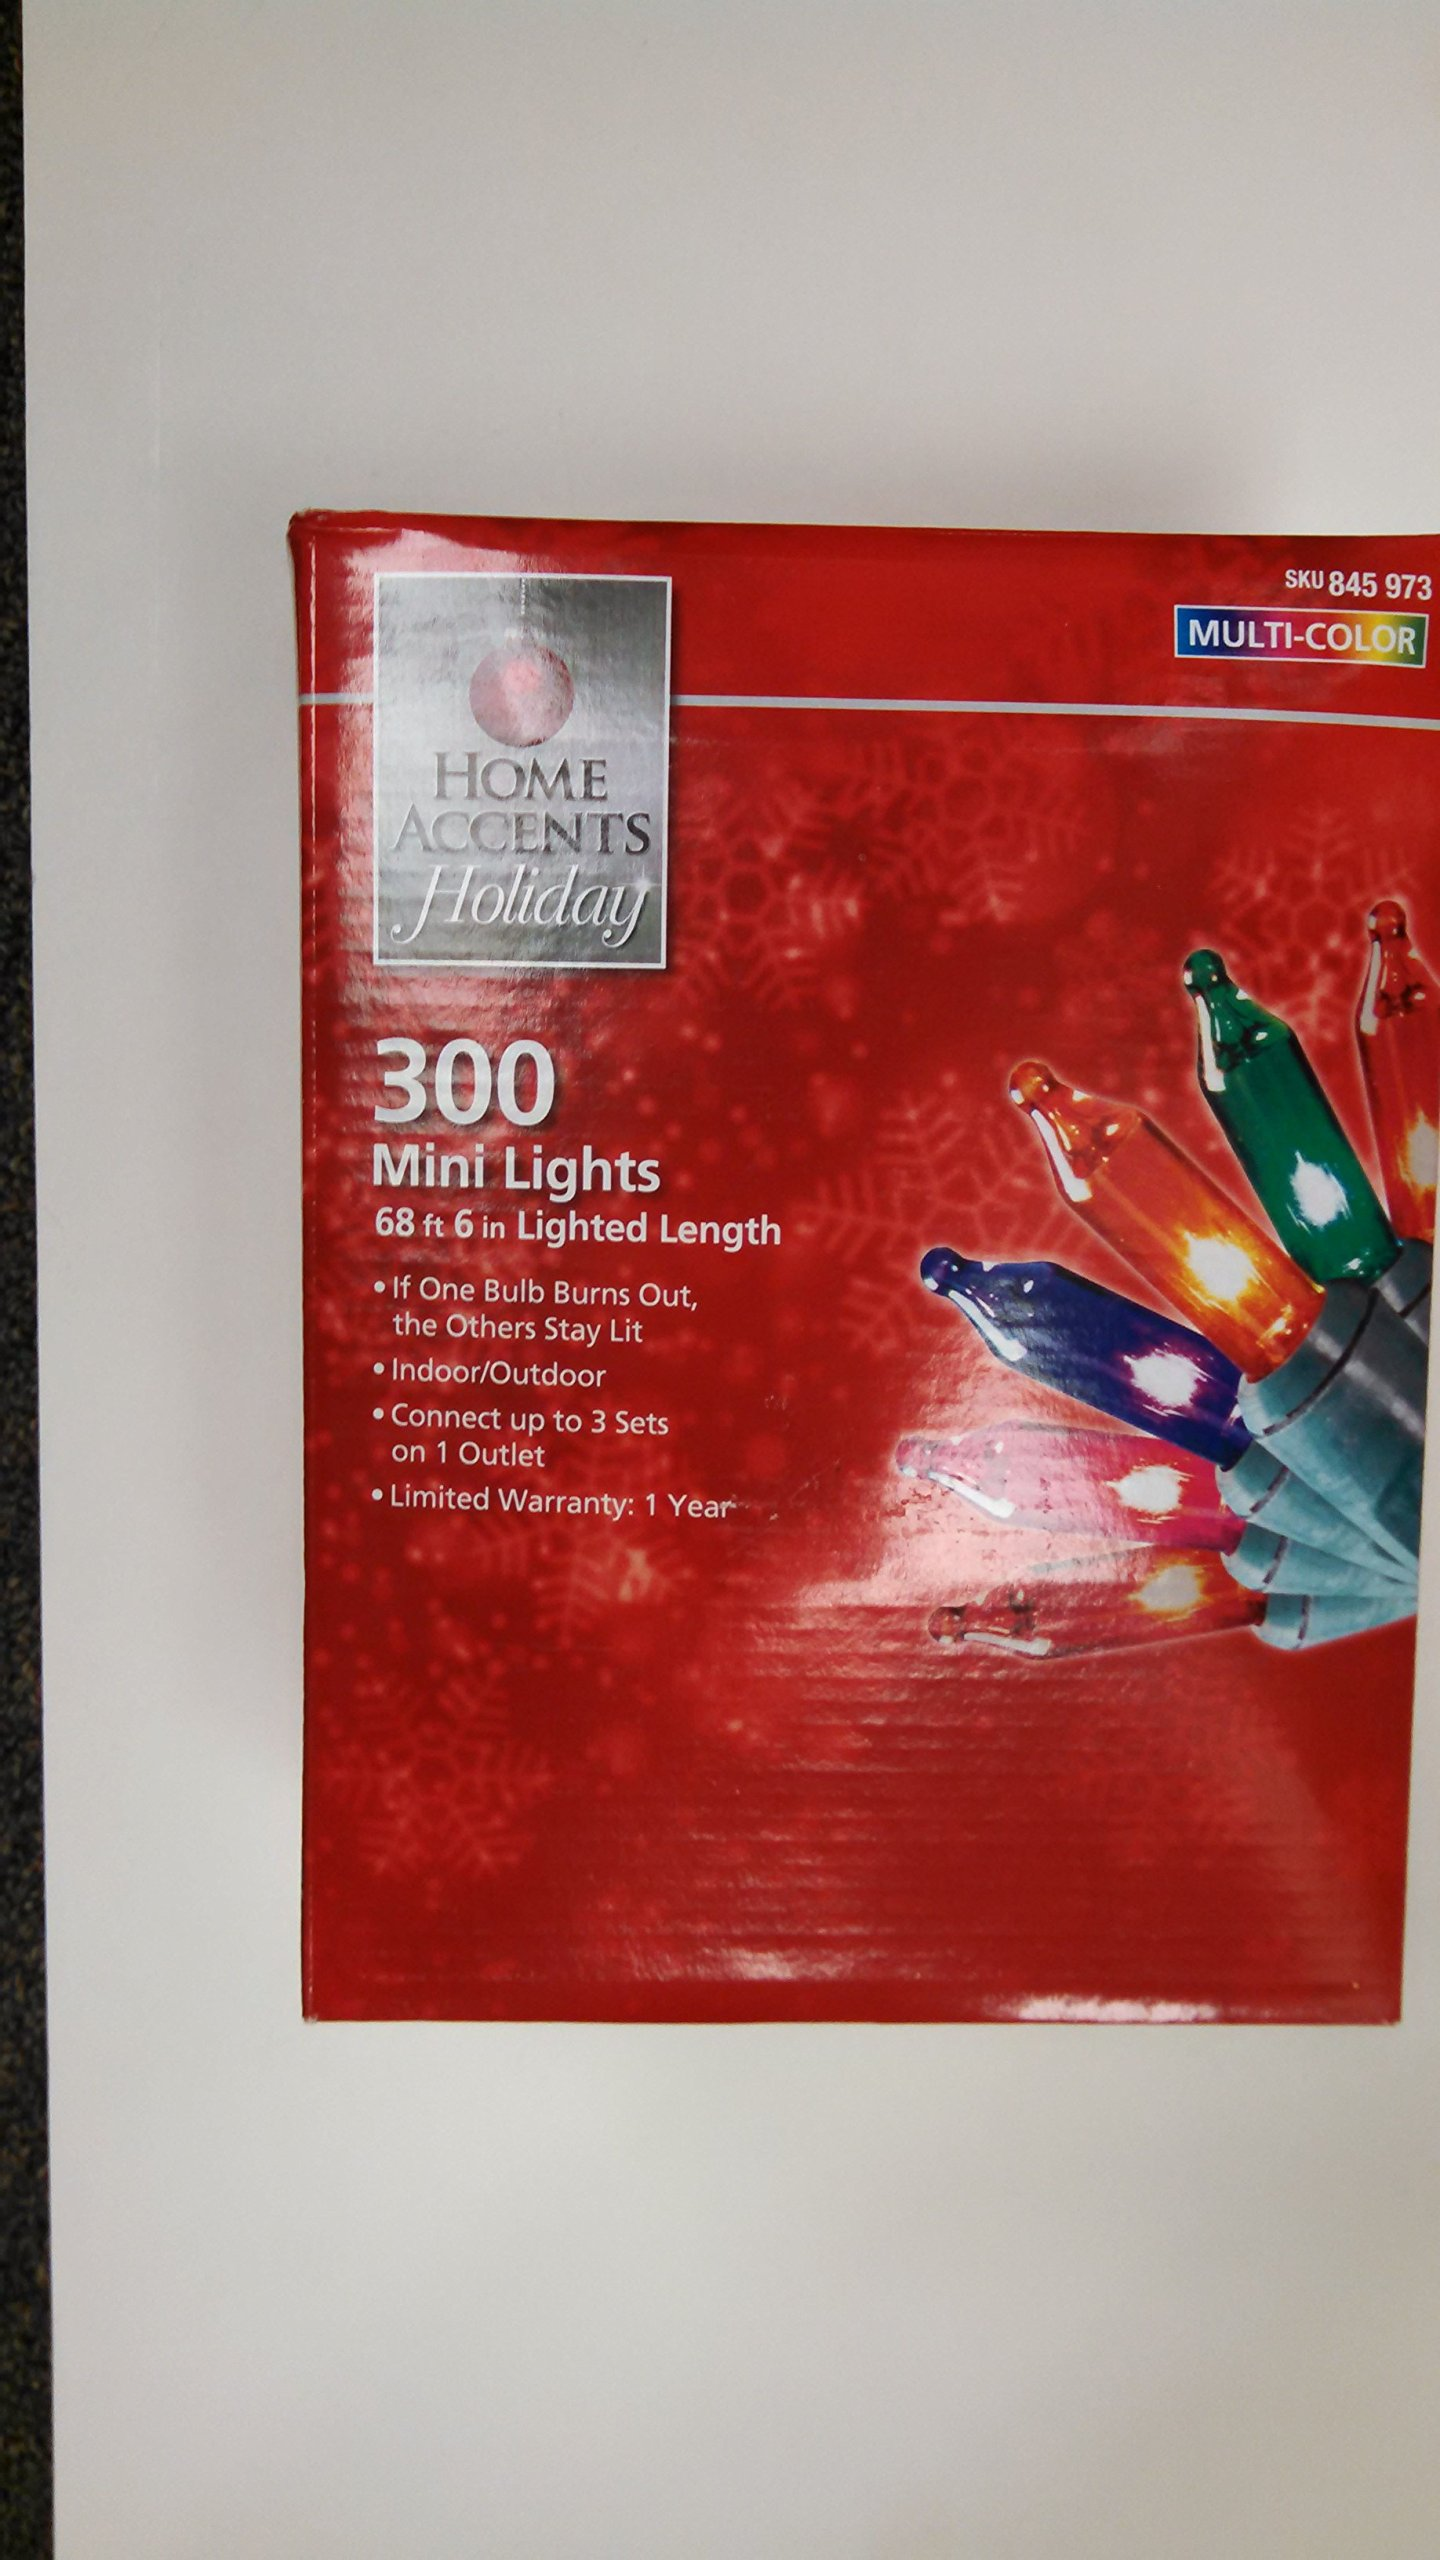 Home Accents Holiday 300 Light Mini Multi-color Light Set